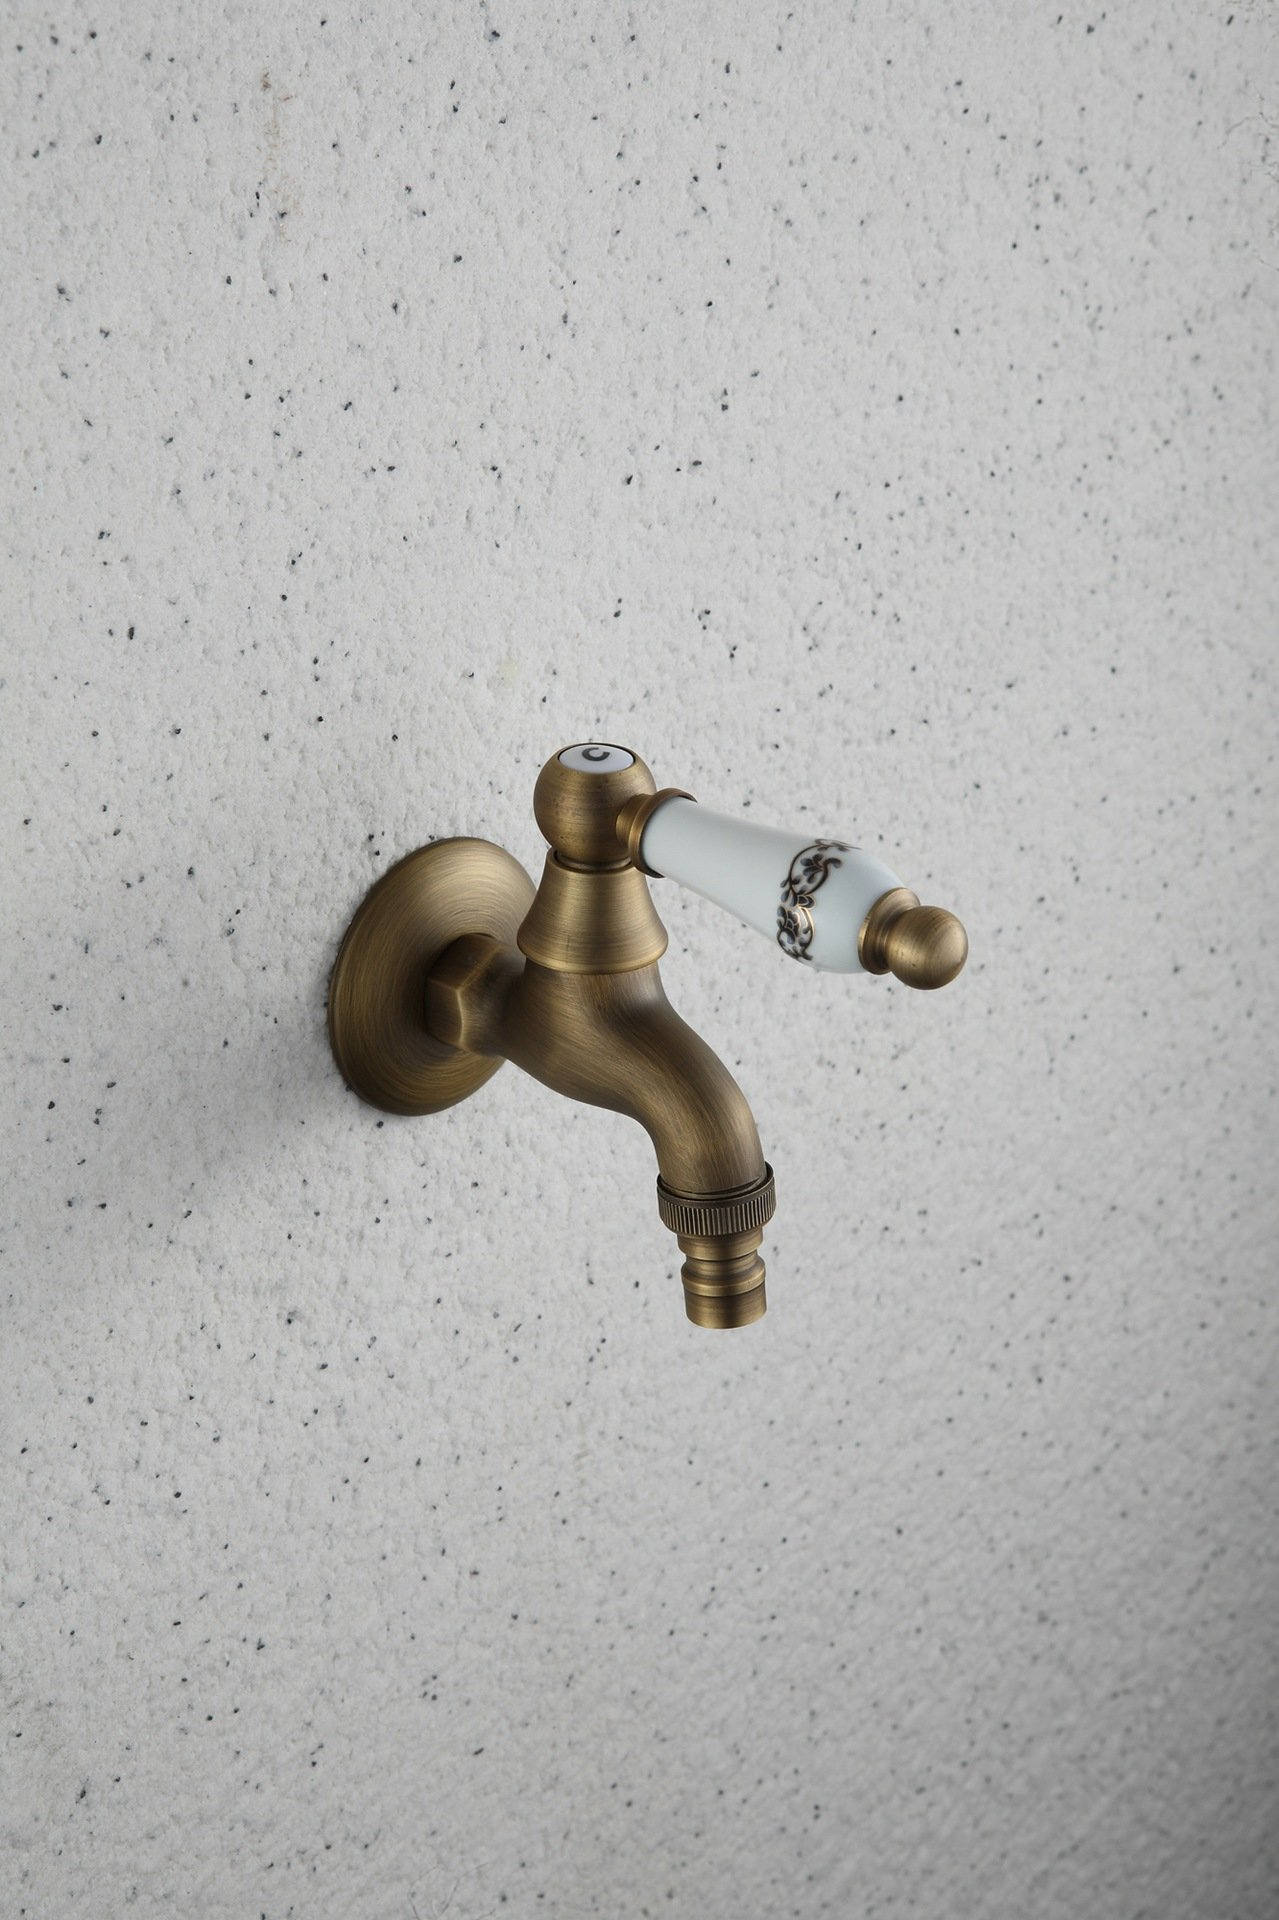 LINA@ European ceramic antique copper single cold in-wall shower/bath mixer by Lina-faucet